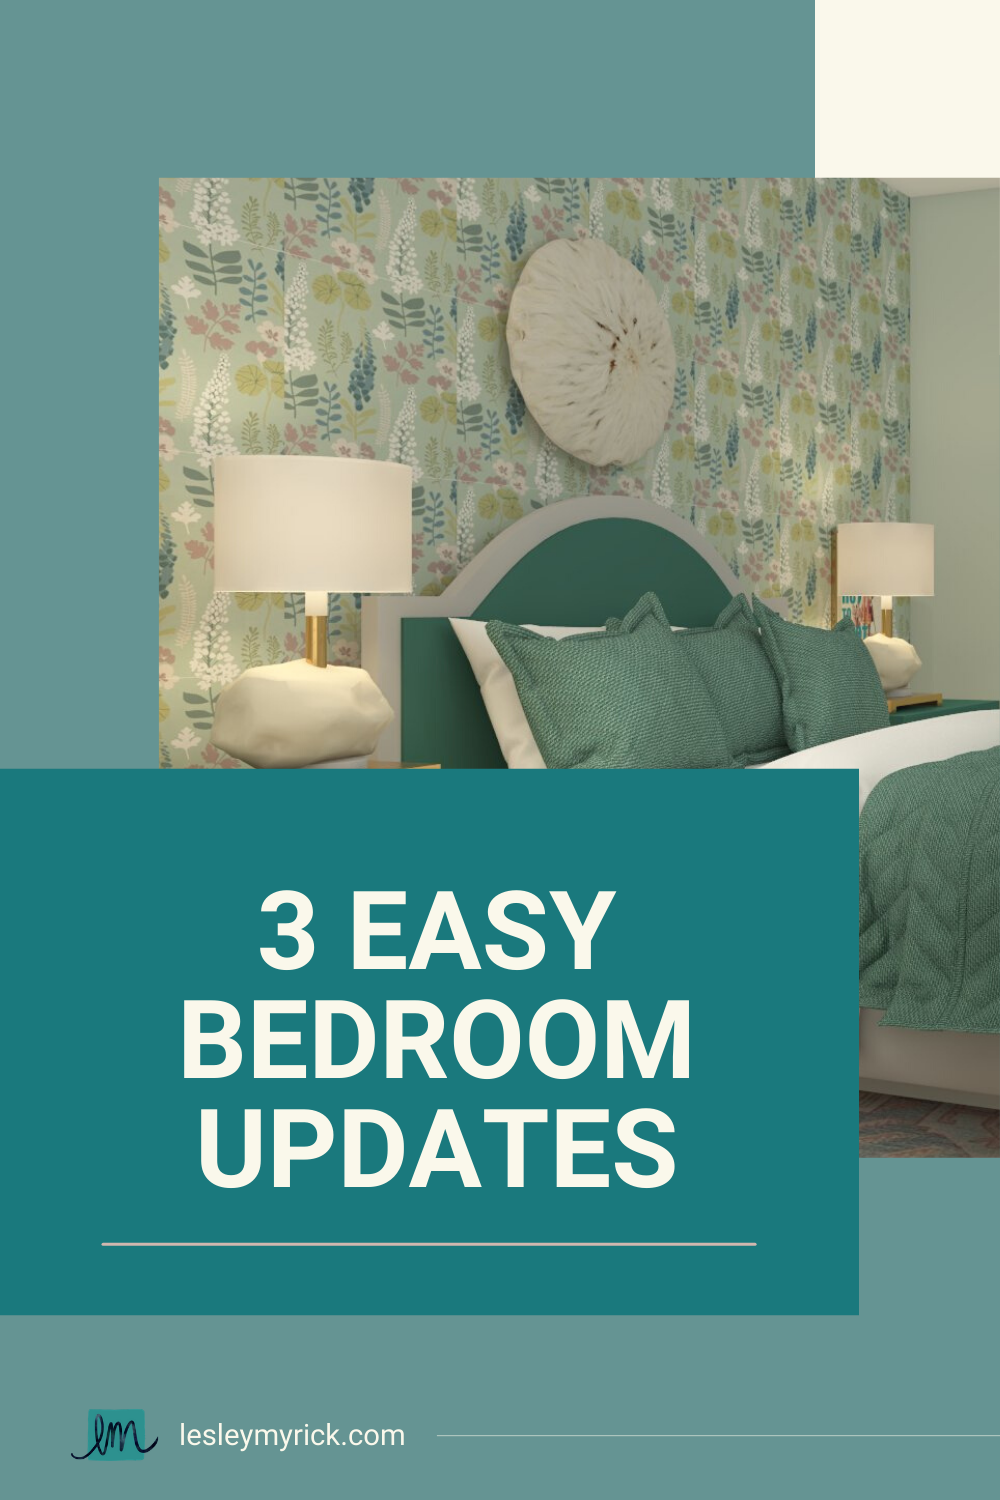 Bedroom update ideas for busy moms (plus shop our favorite nightstands, accent pillows, and bedroom art!)